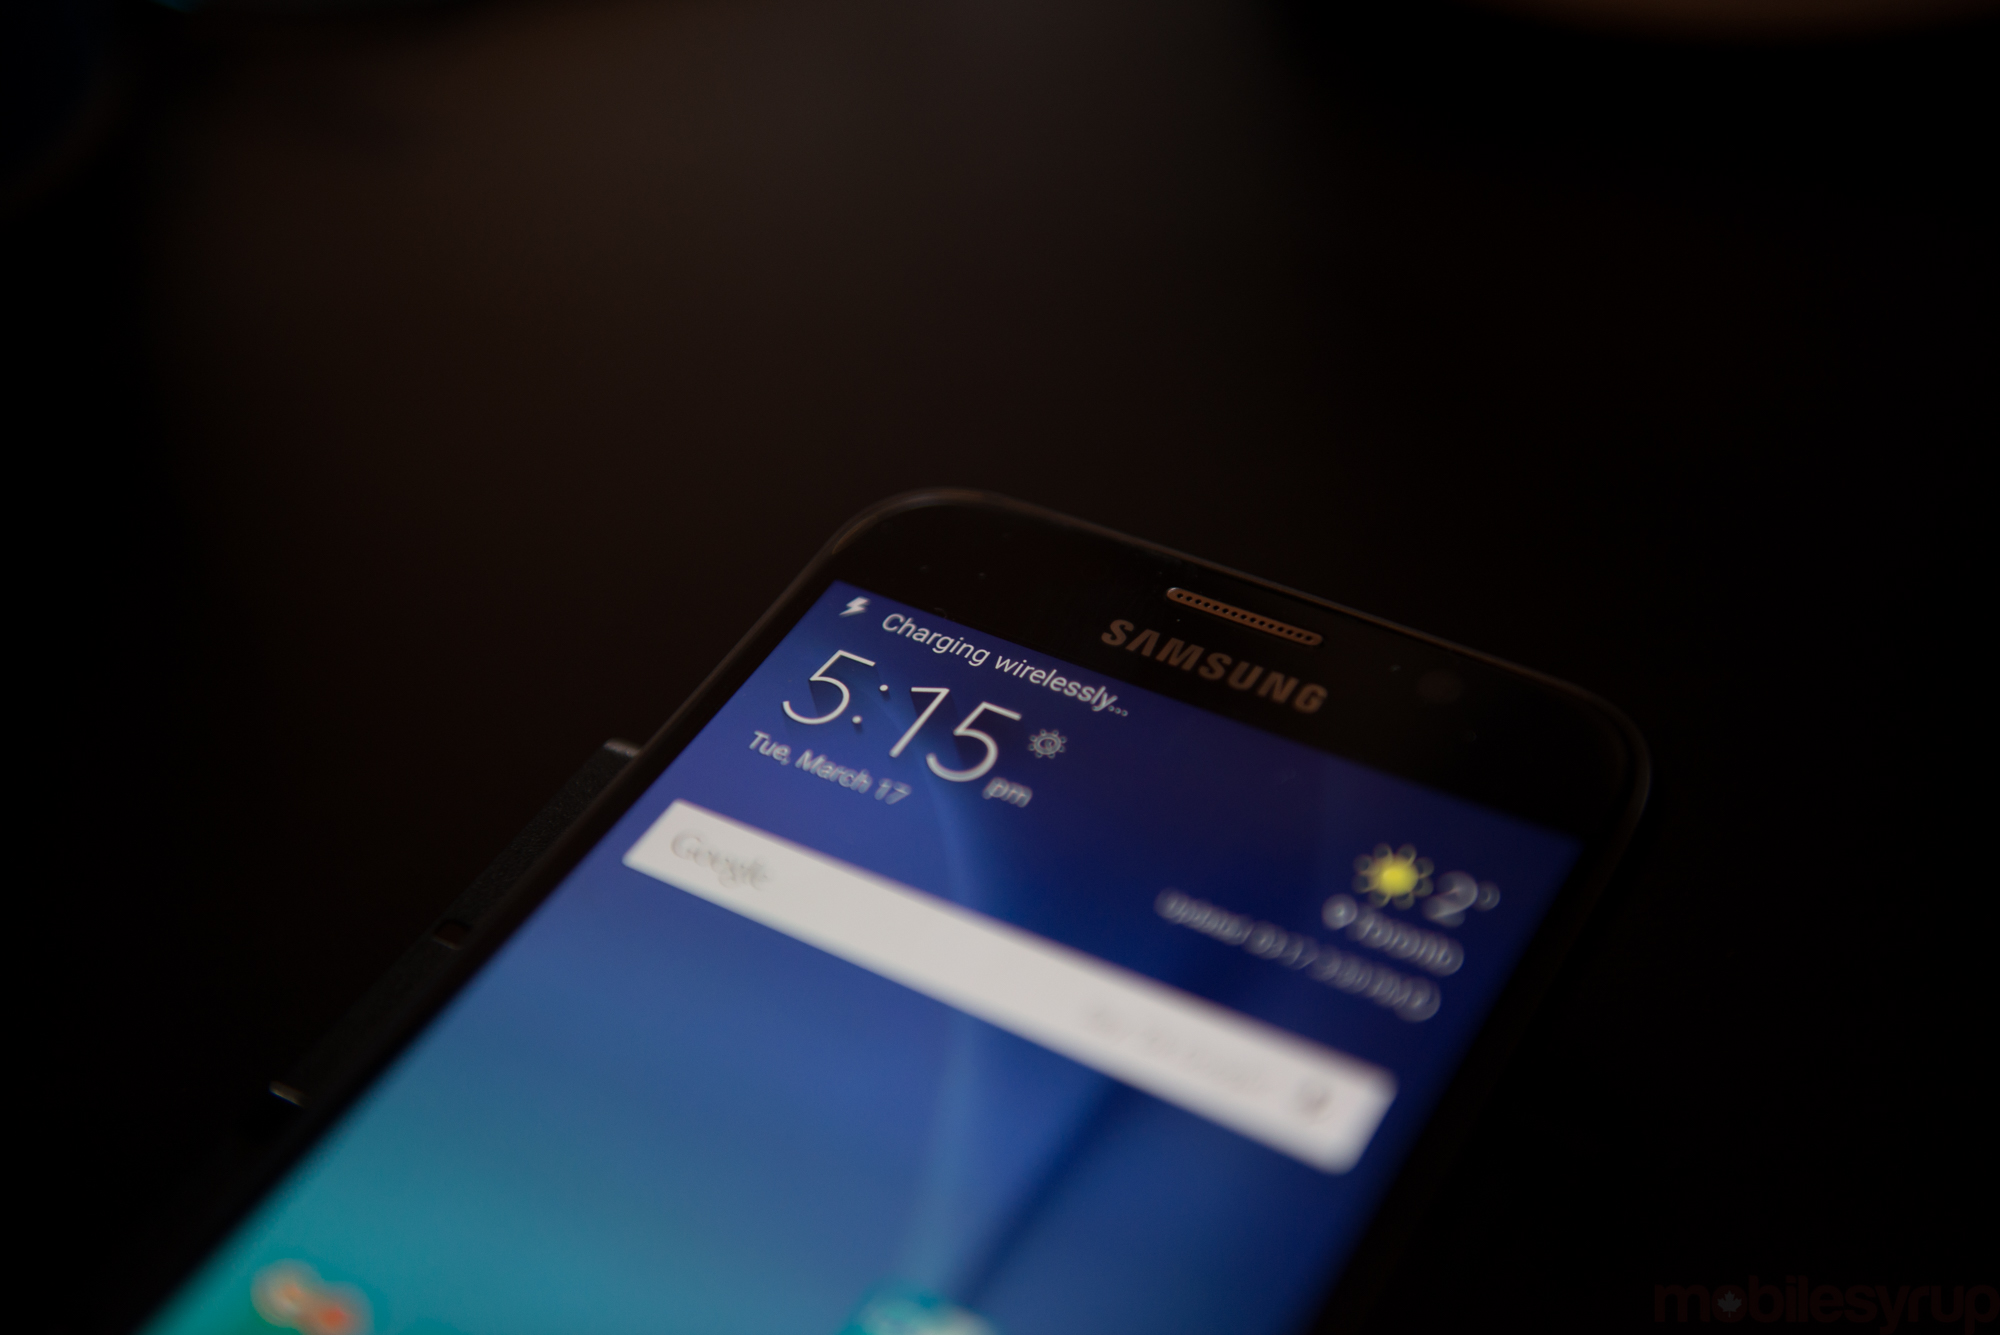 samsunggalaxys6s6edgereview-5694